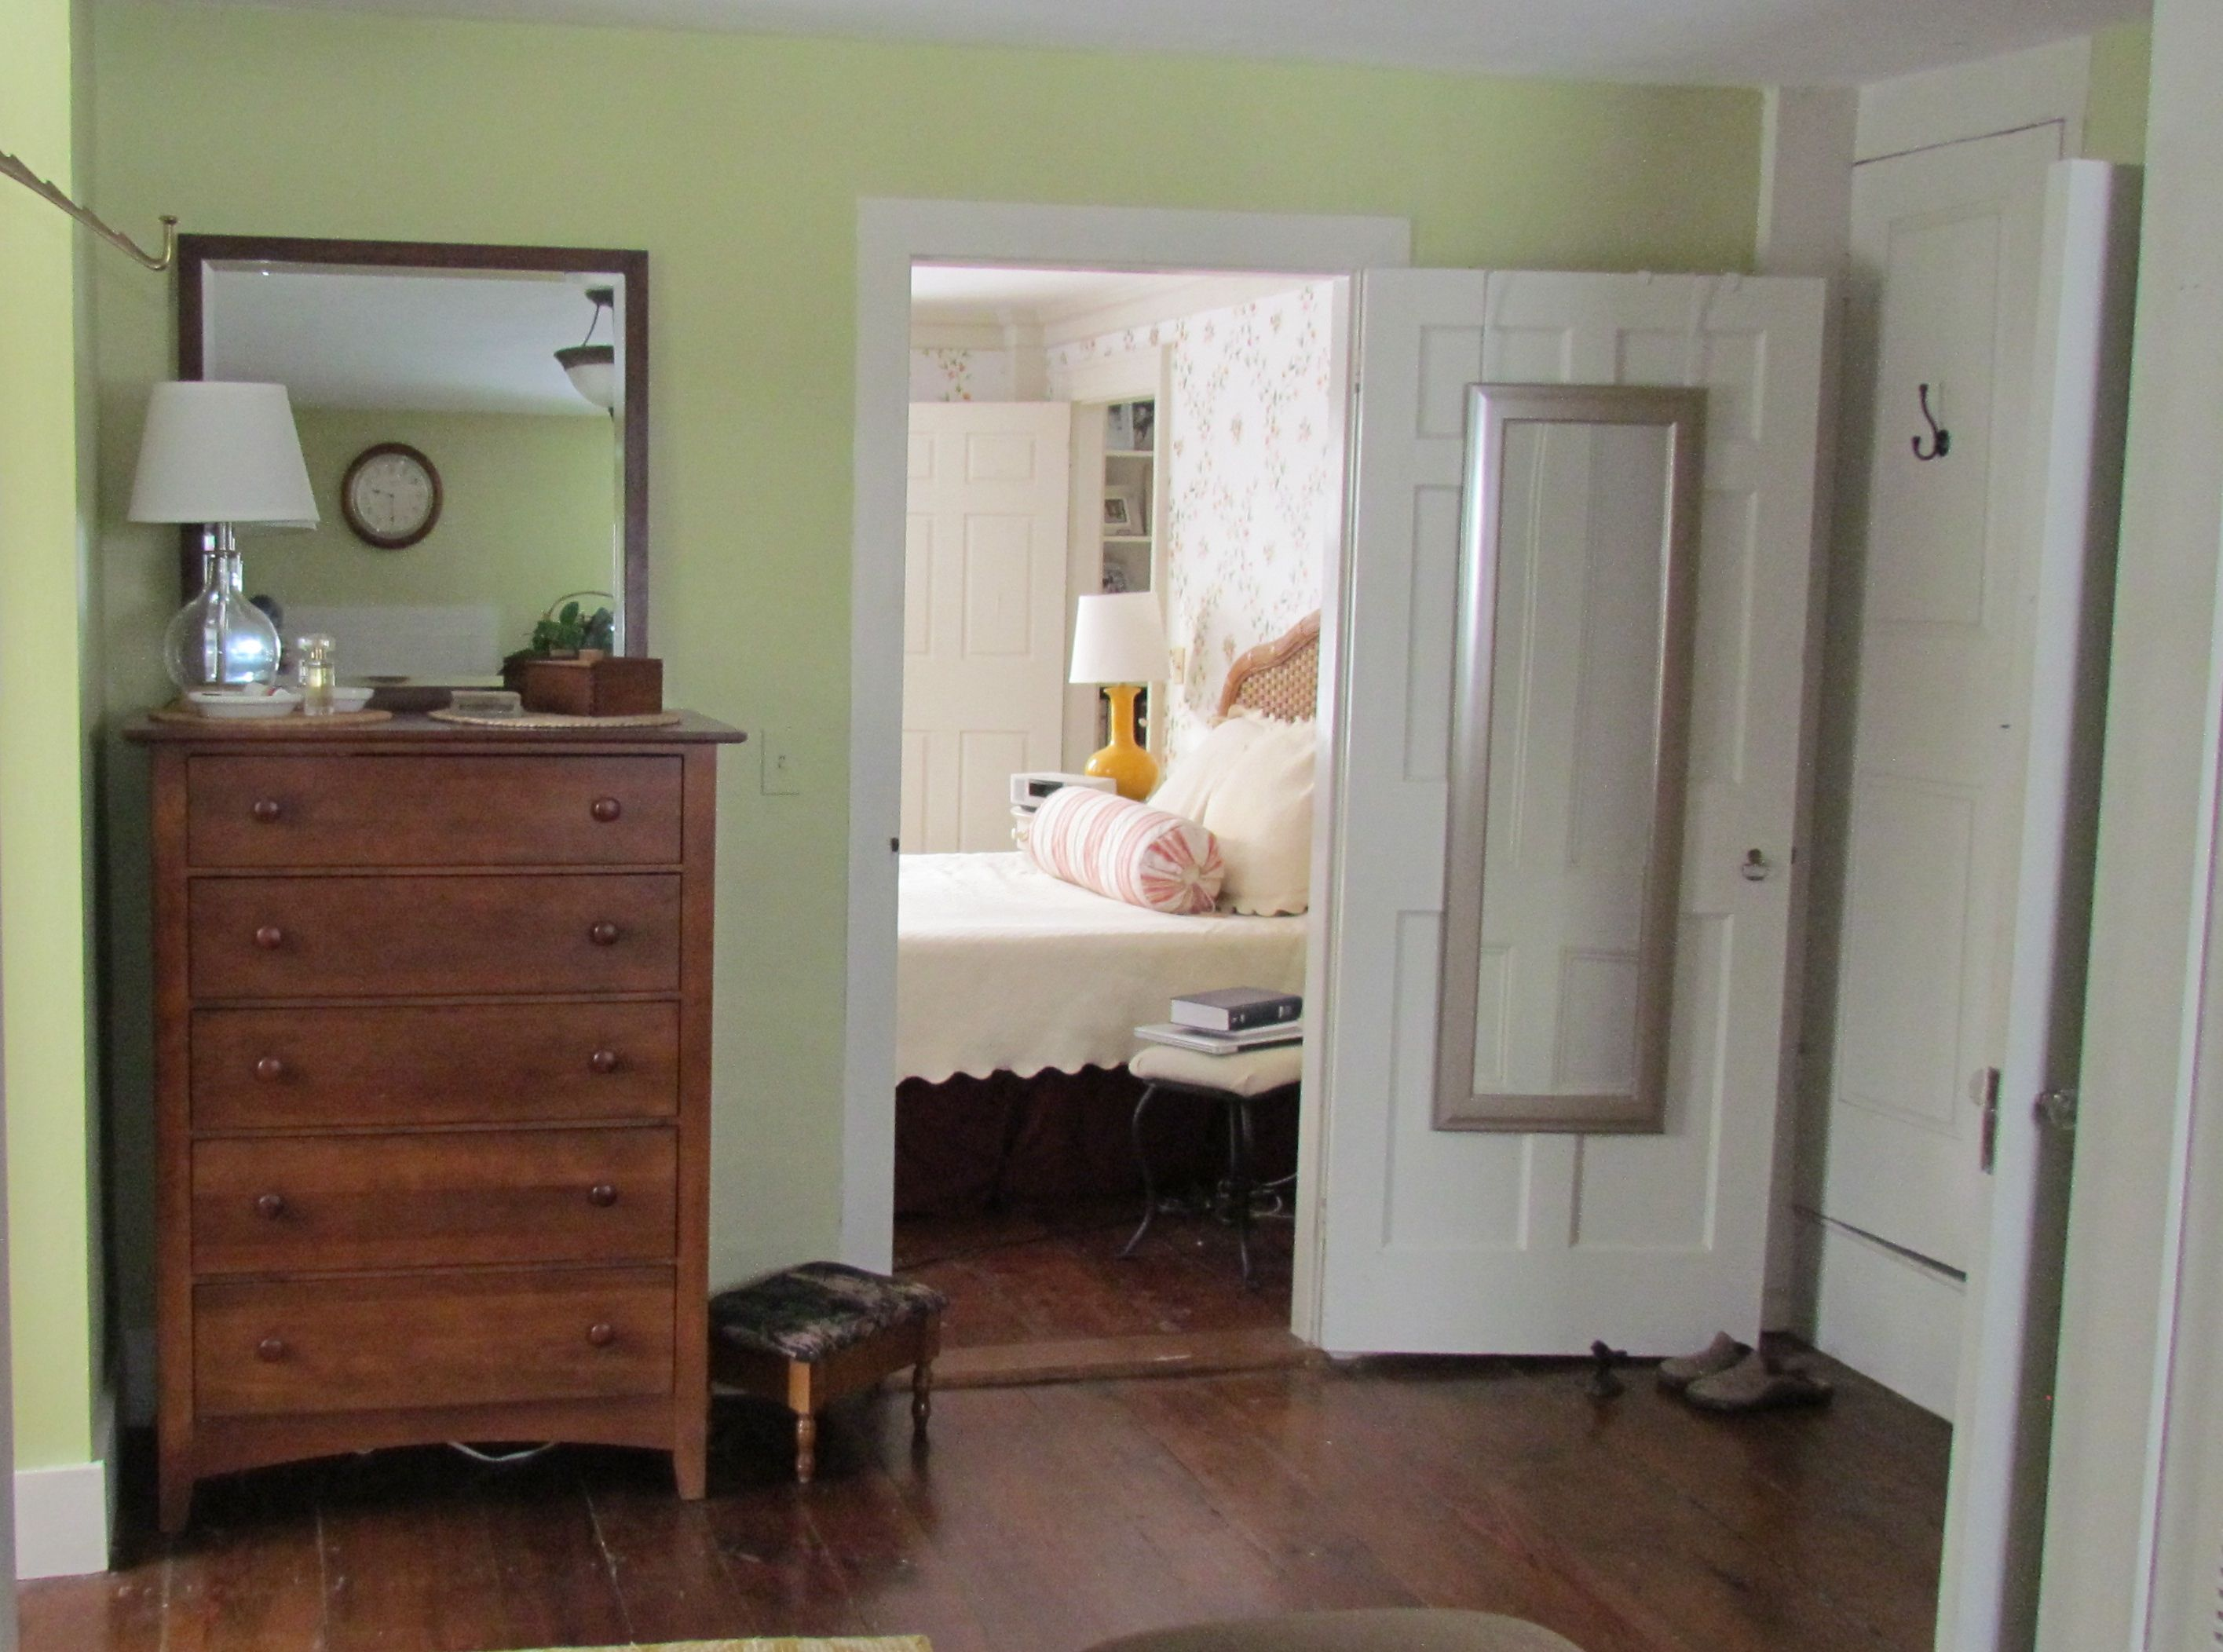 built plans dresser in design home closet bedroom closets ideas for ikea